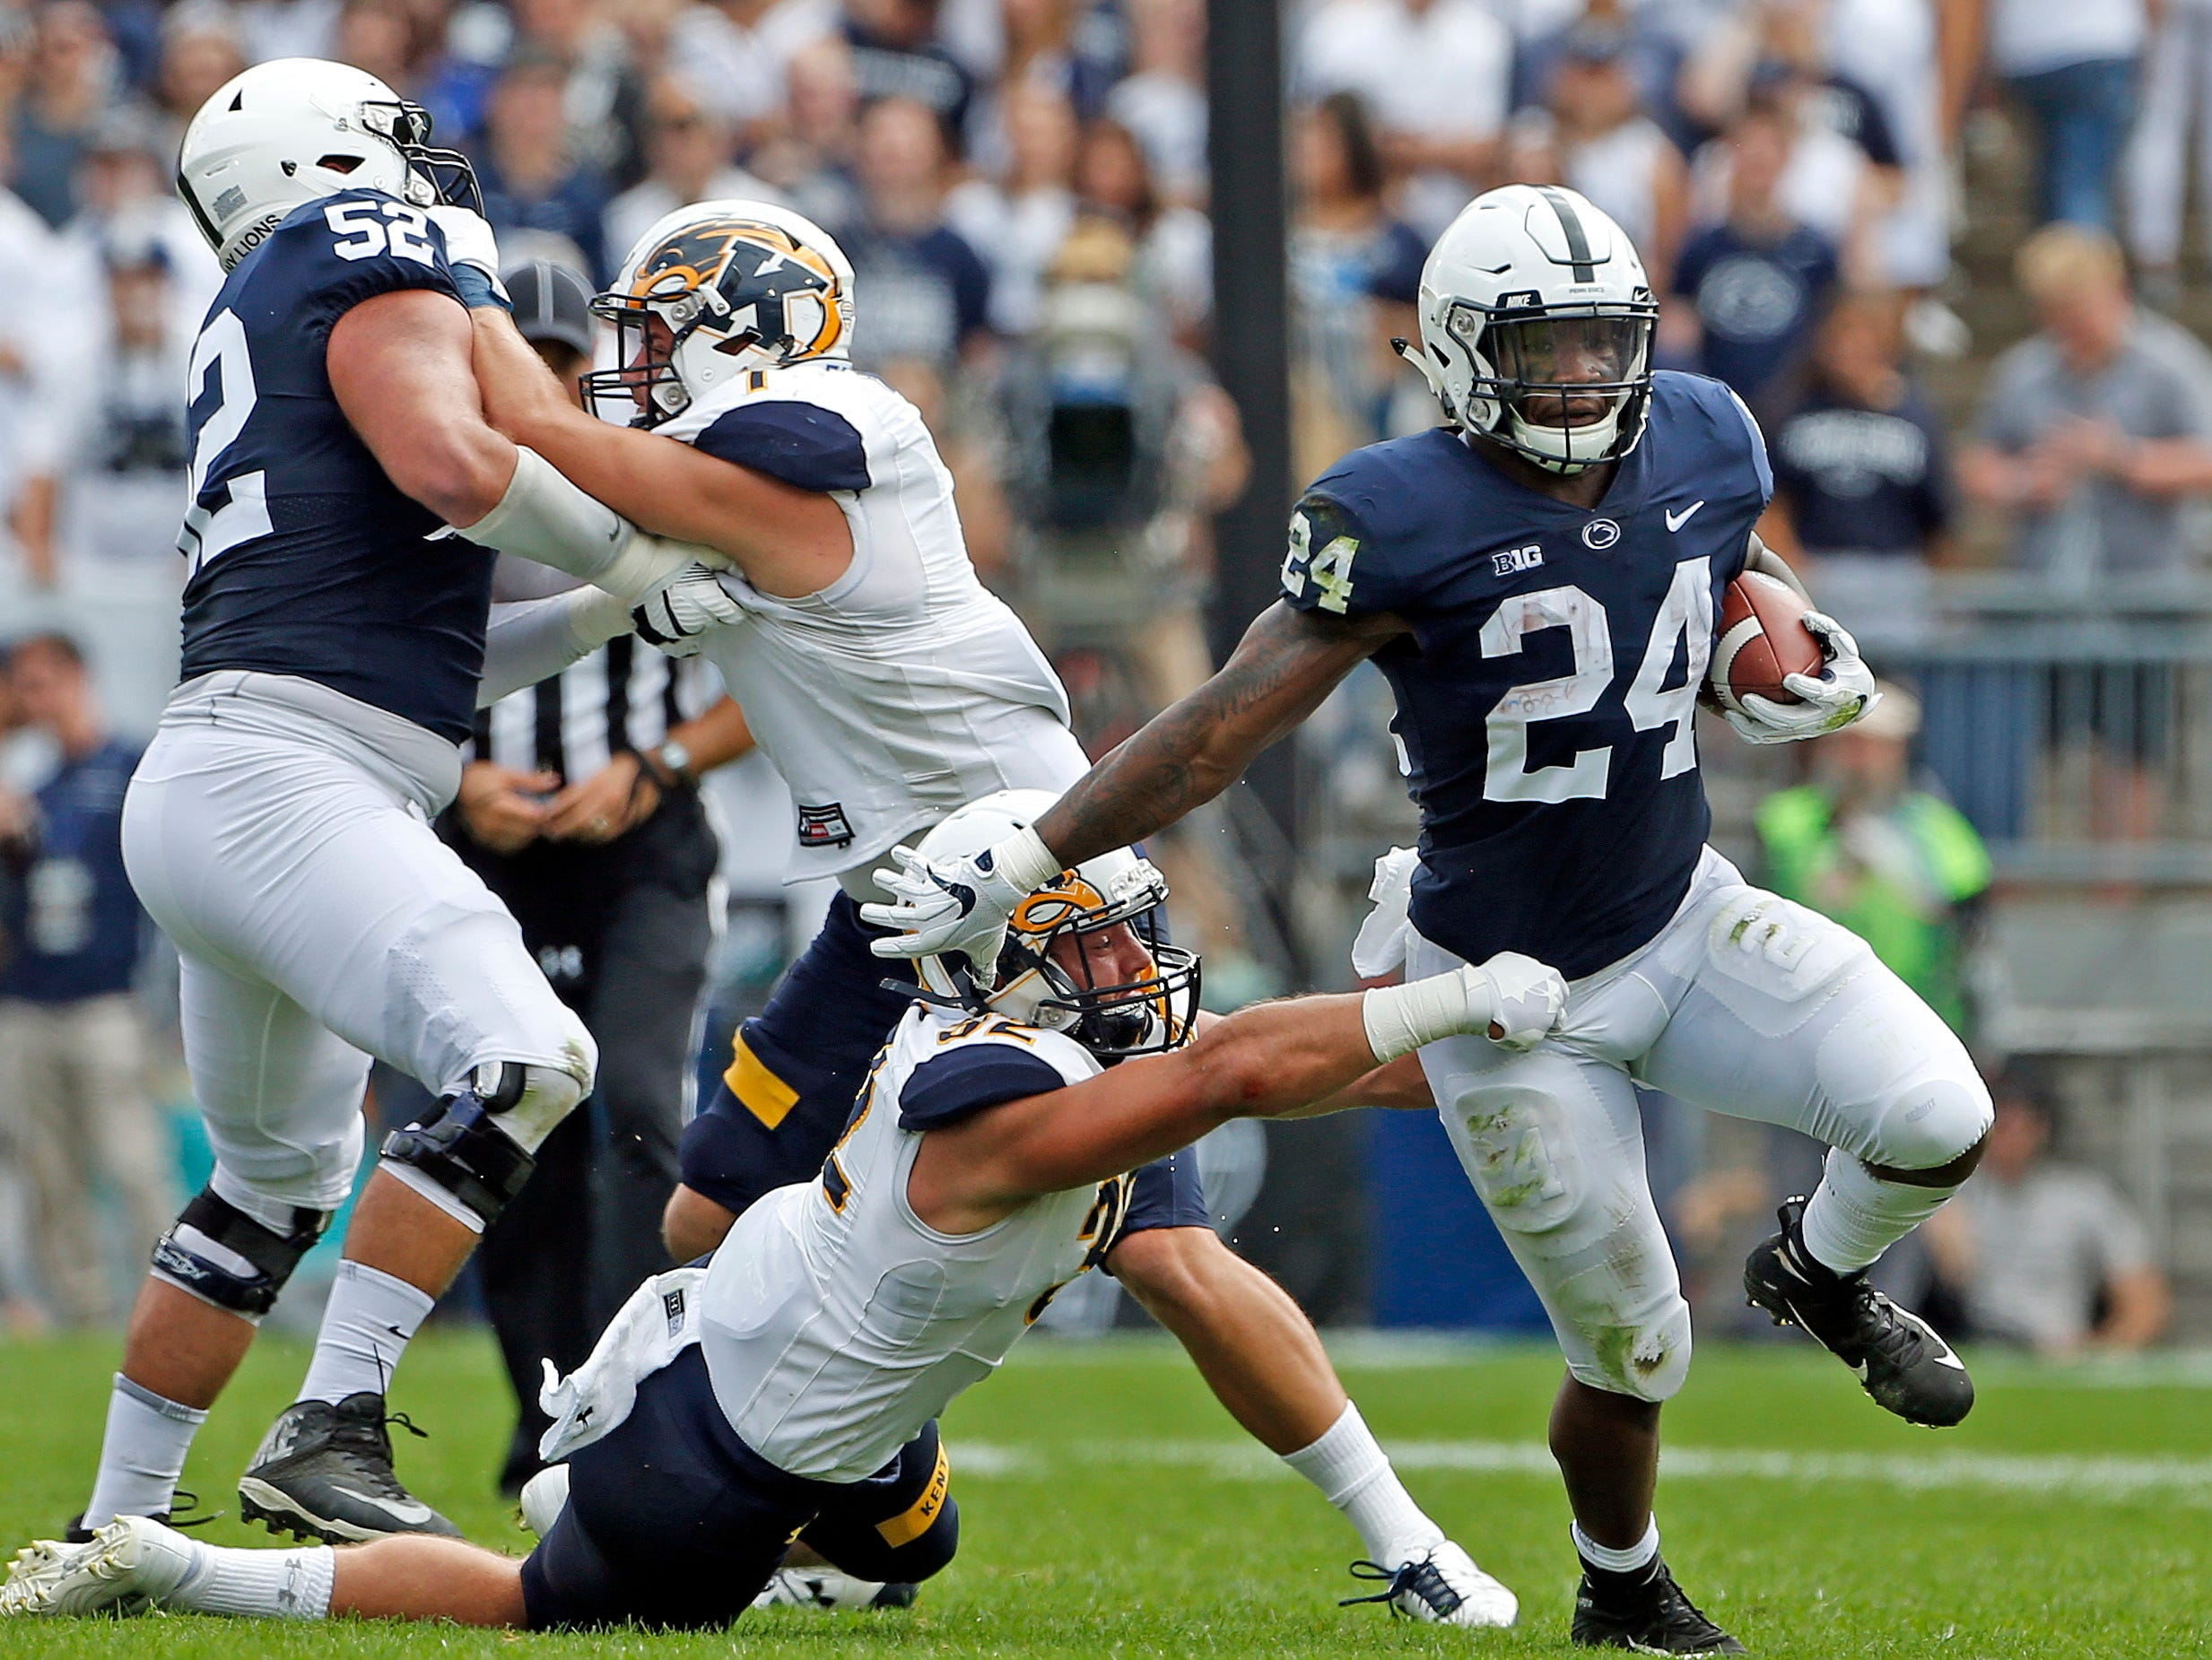 Penn State's Miles Sanders (24) gets past Kent State's Dalton Hicks (32) during the first half of an NCAA college football game in State College, Pa., Saturday, Sept. 15, 2018.